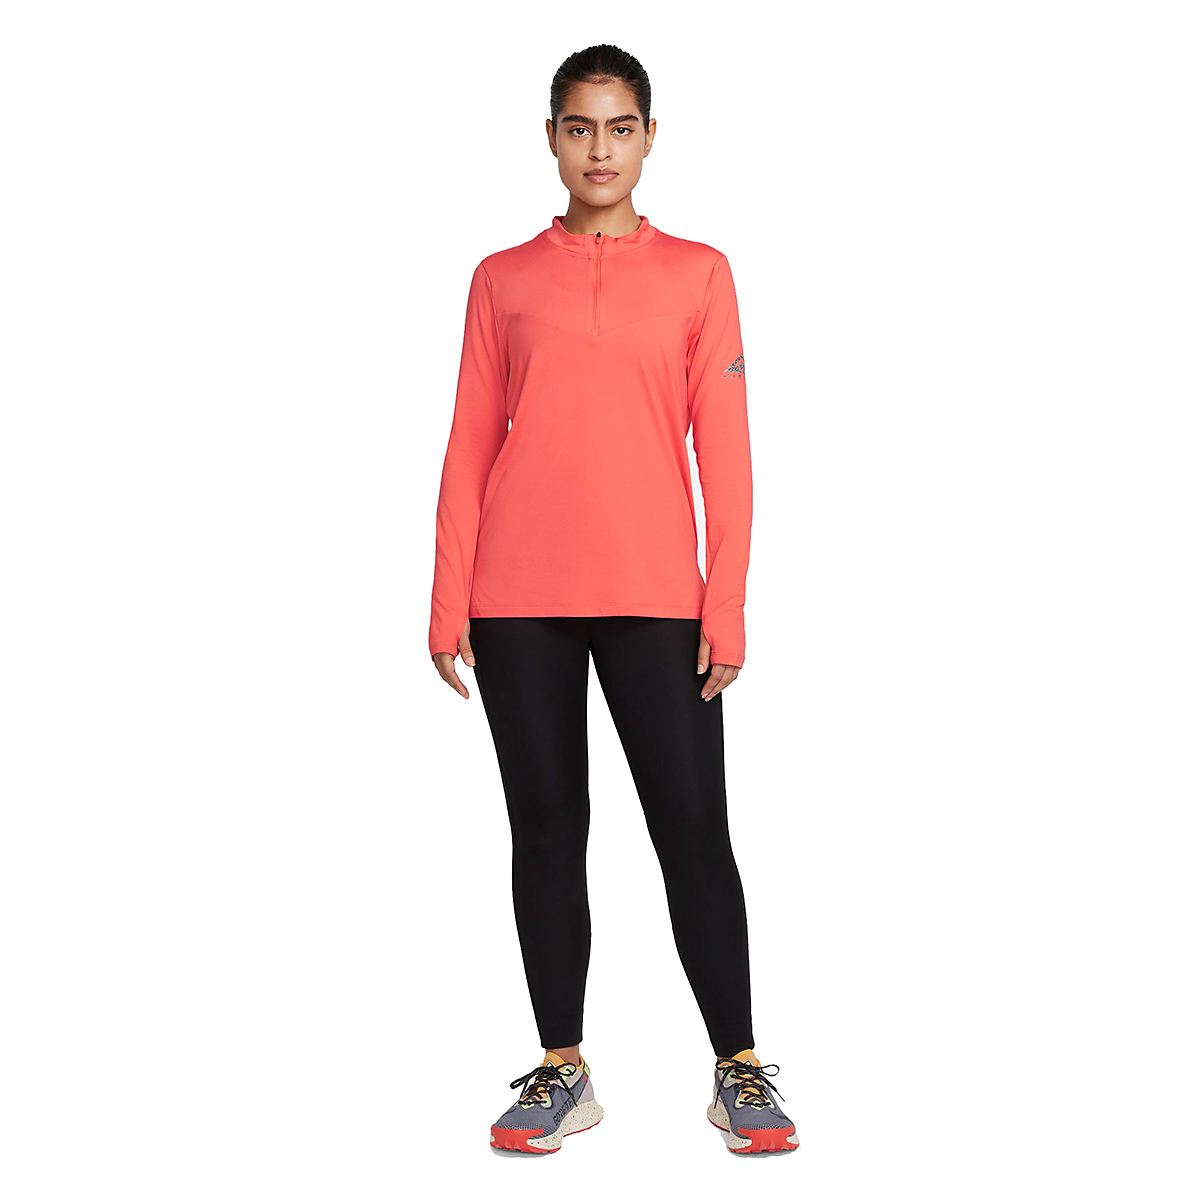 Women's Nike Element Trail Running Midlayer - Color: Magic Ember/Reflective Silver - Size: XS, Magic Ember/Reflective Silver, large, image 7